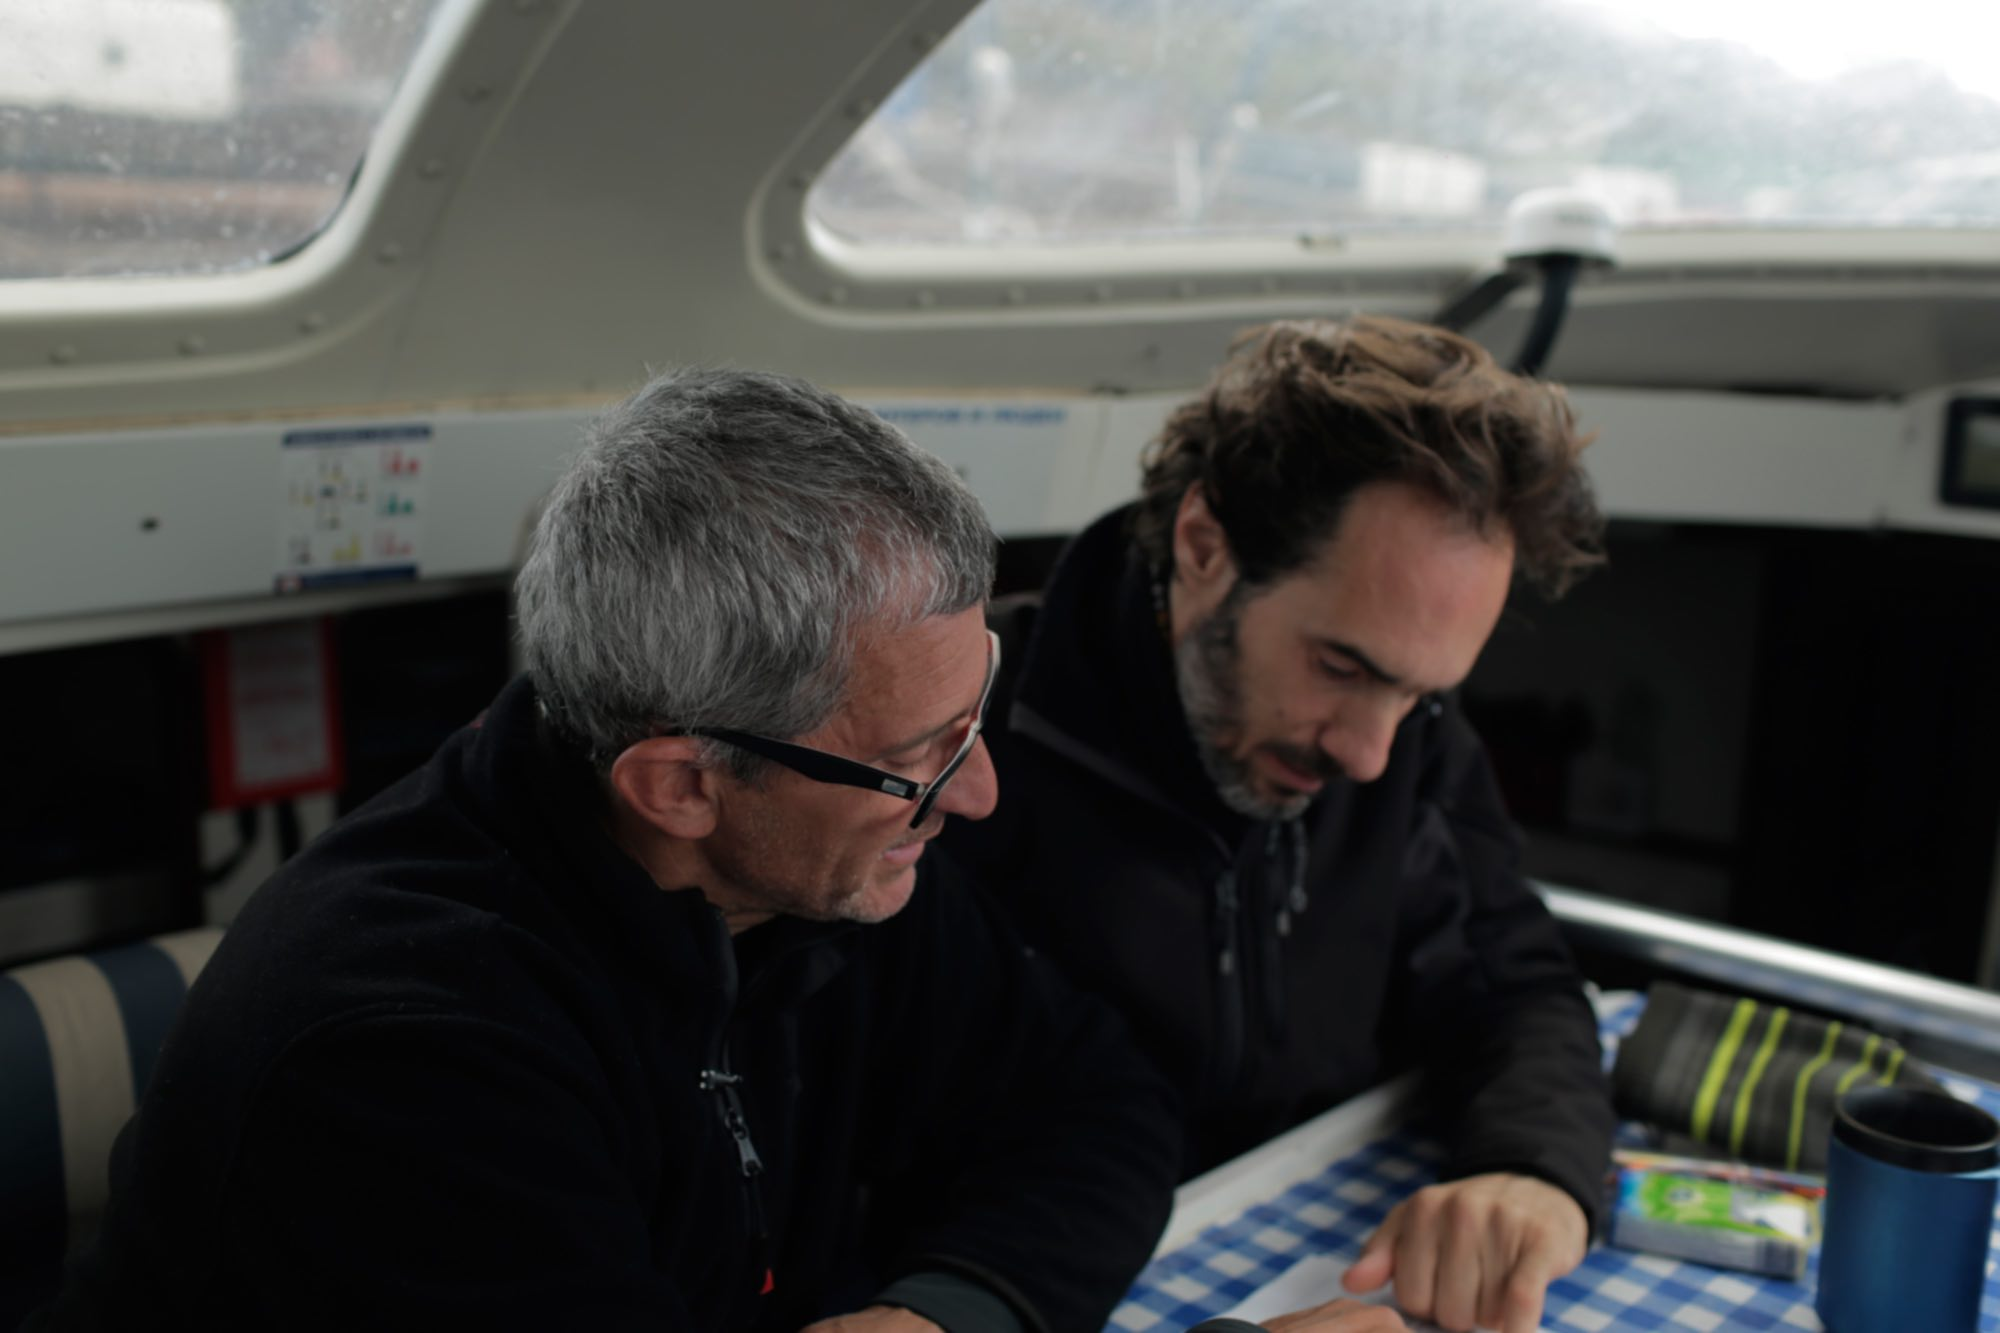 Albert Bargués observing a nautical chart together with the writer and scriptwriter Javier Argüello.